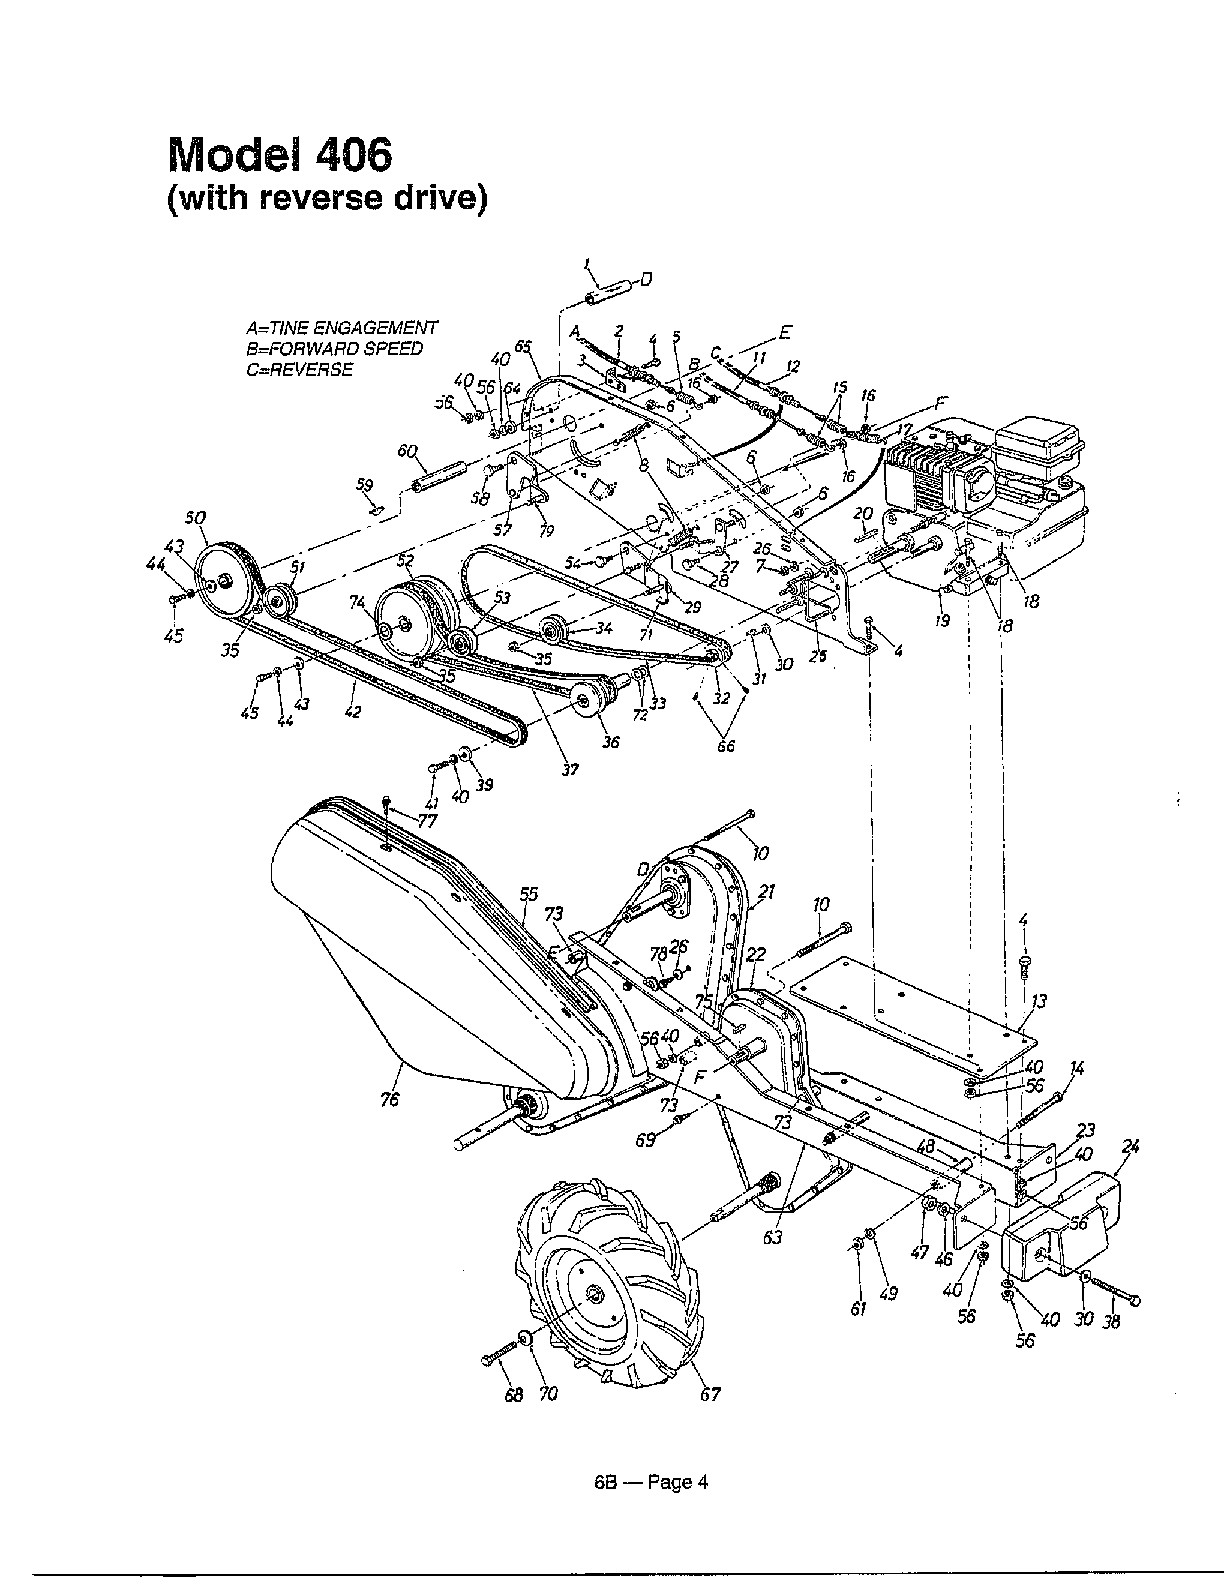 Craftsman Tiller Parts Diagram Tacago12 S soup Of Craftsman Tiller Parts Diagram